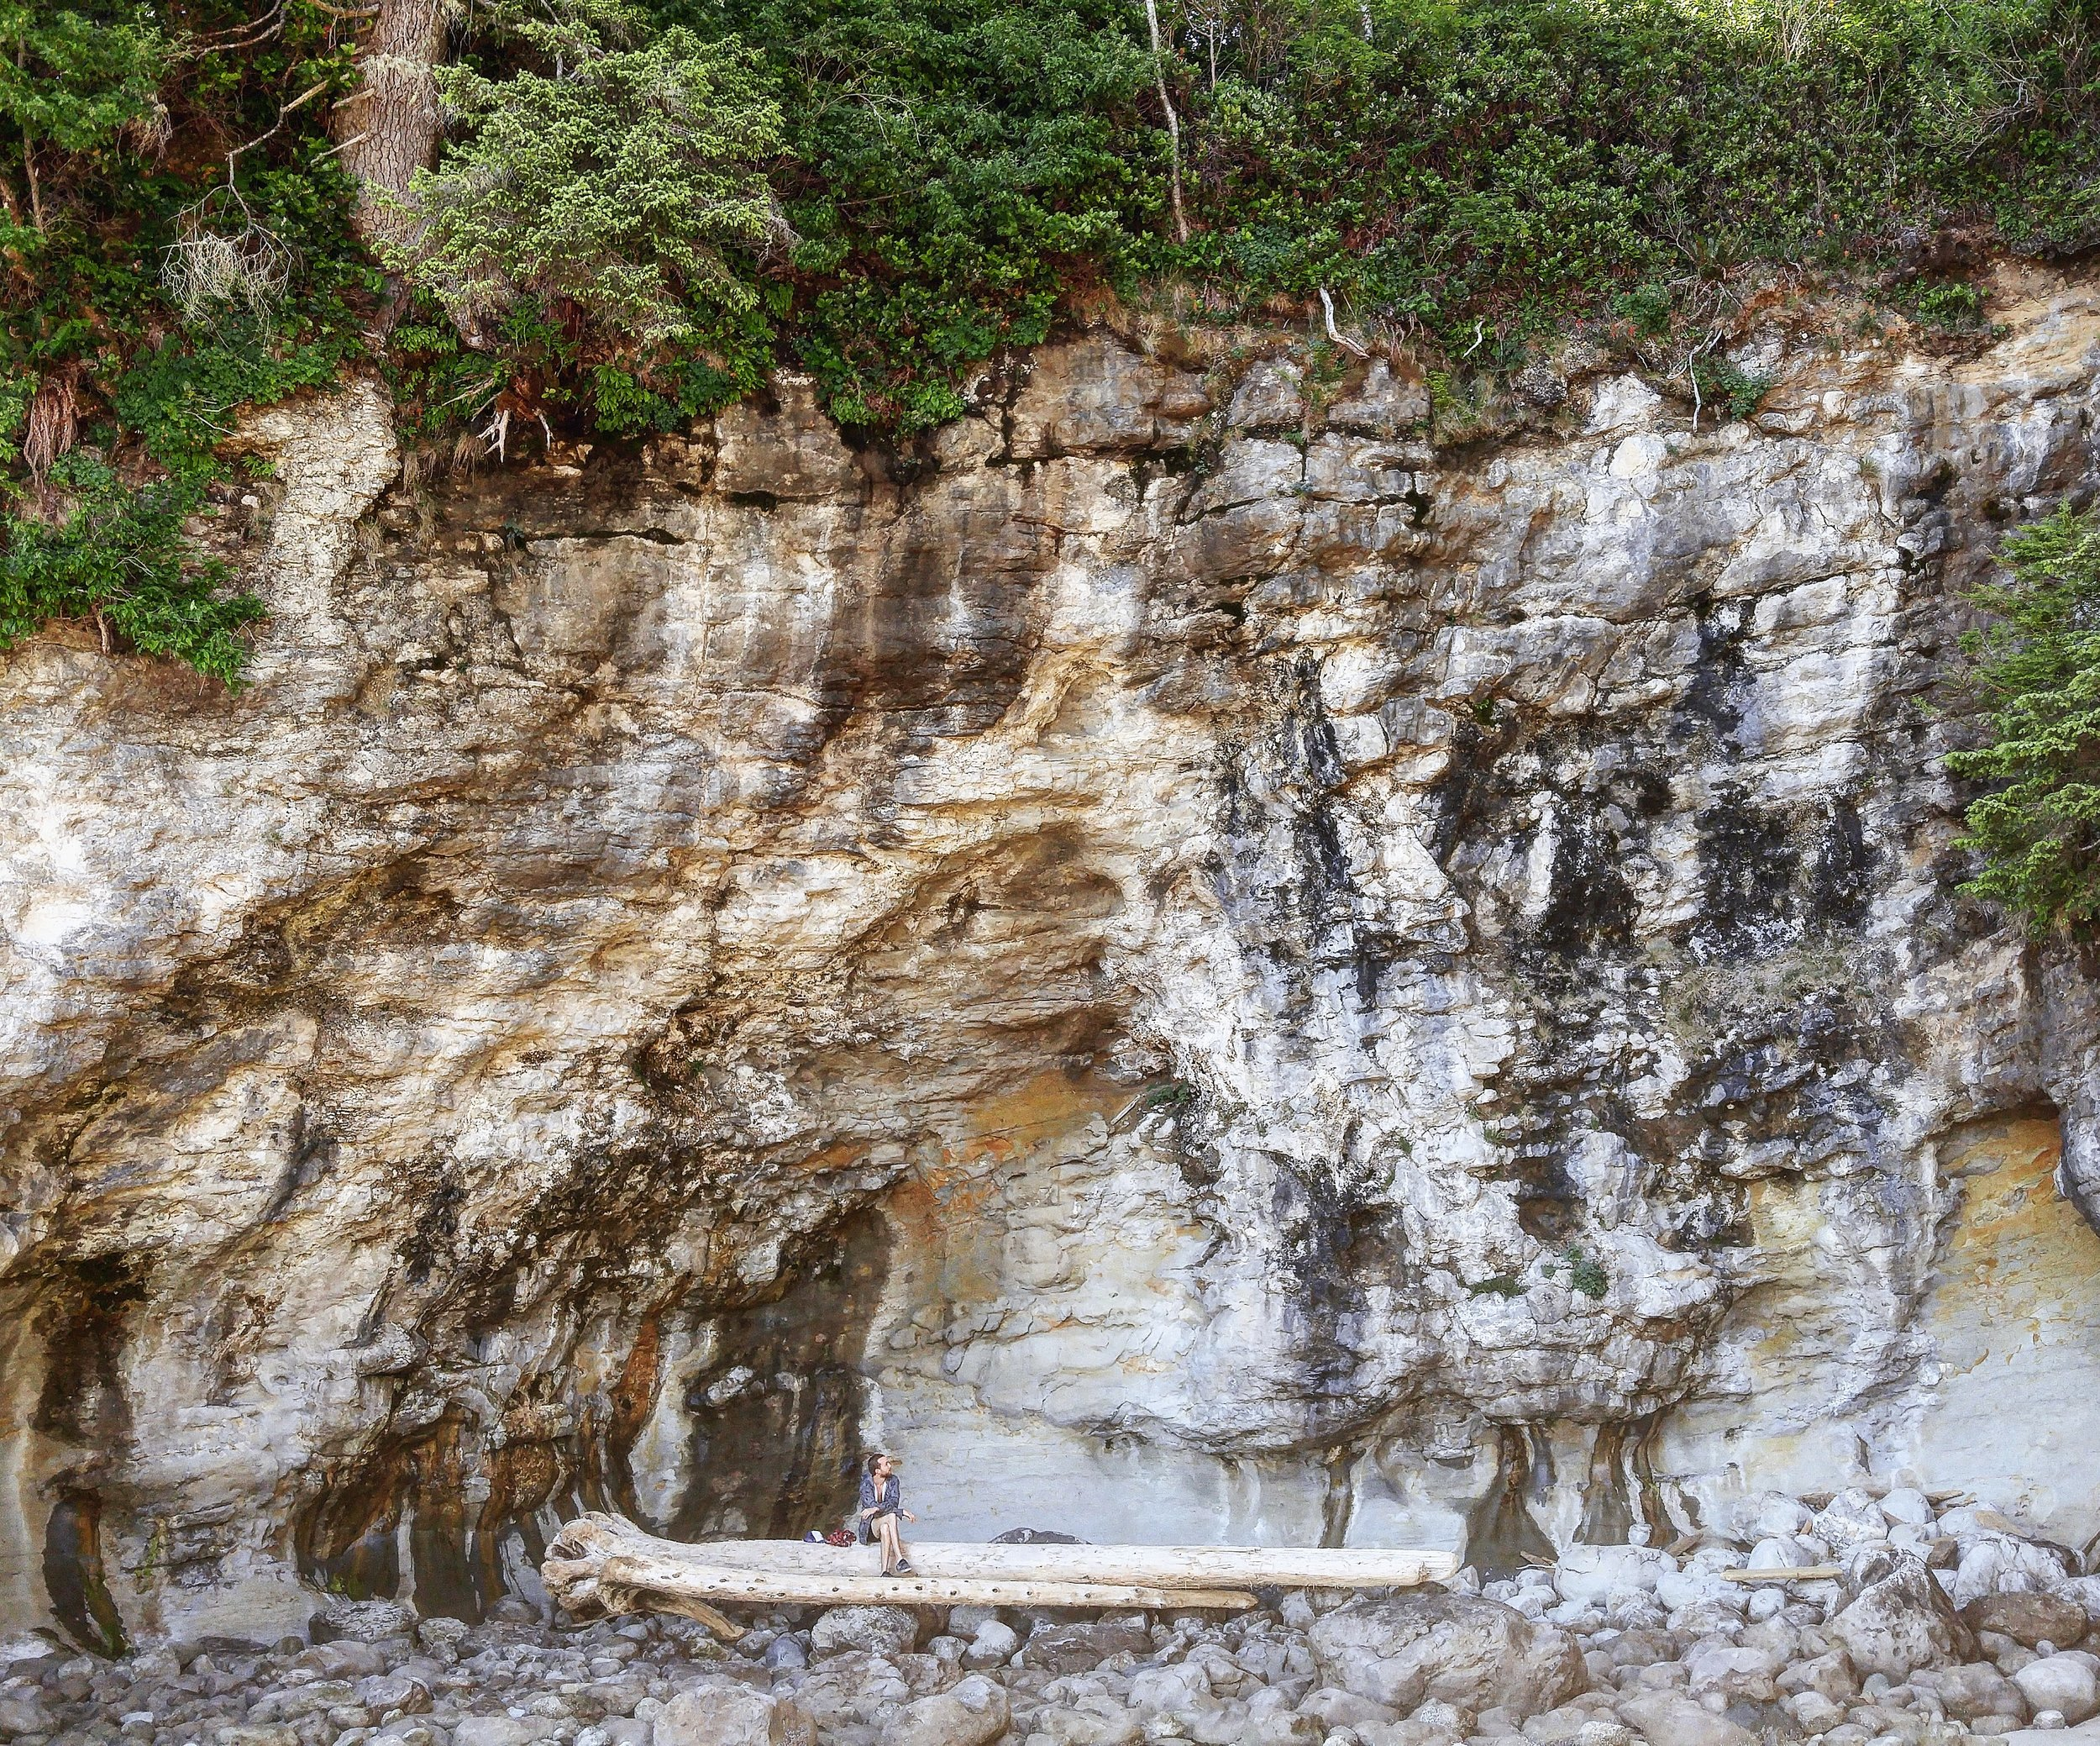 Where's Waldo? (This giant wall of rock is a lot bigger than you might think)